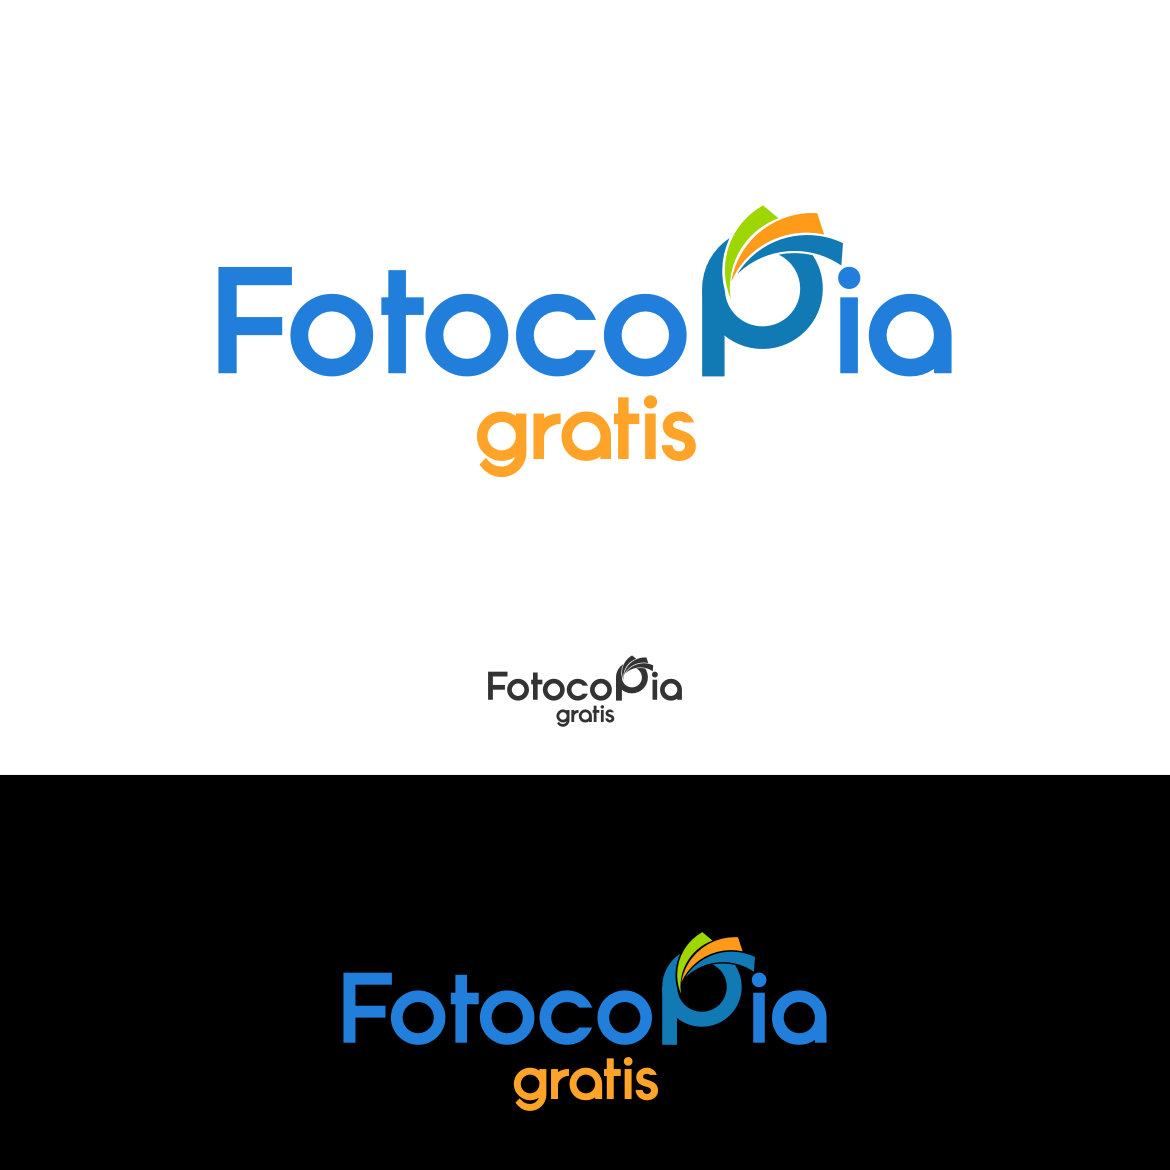 Logo Design by rifatz - Entry No. 226 in the Logo Design Contest Inspiring Logo Design for Fotocopiagratis.